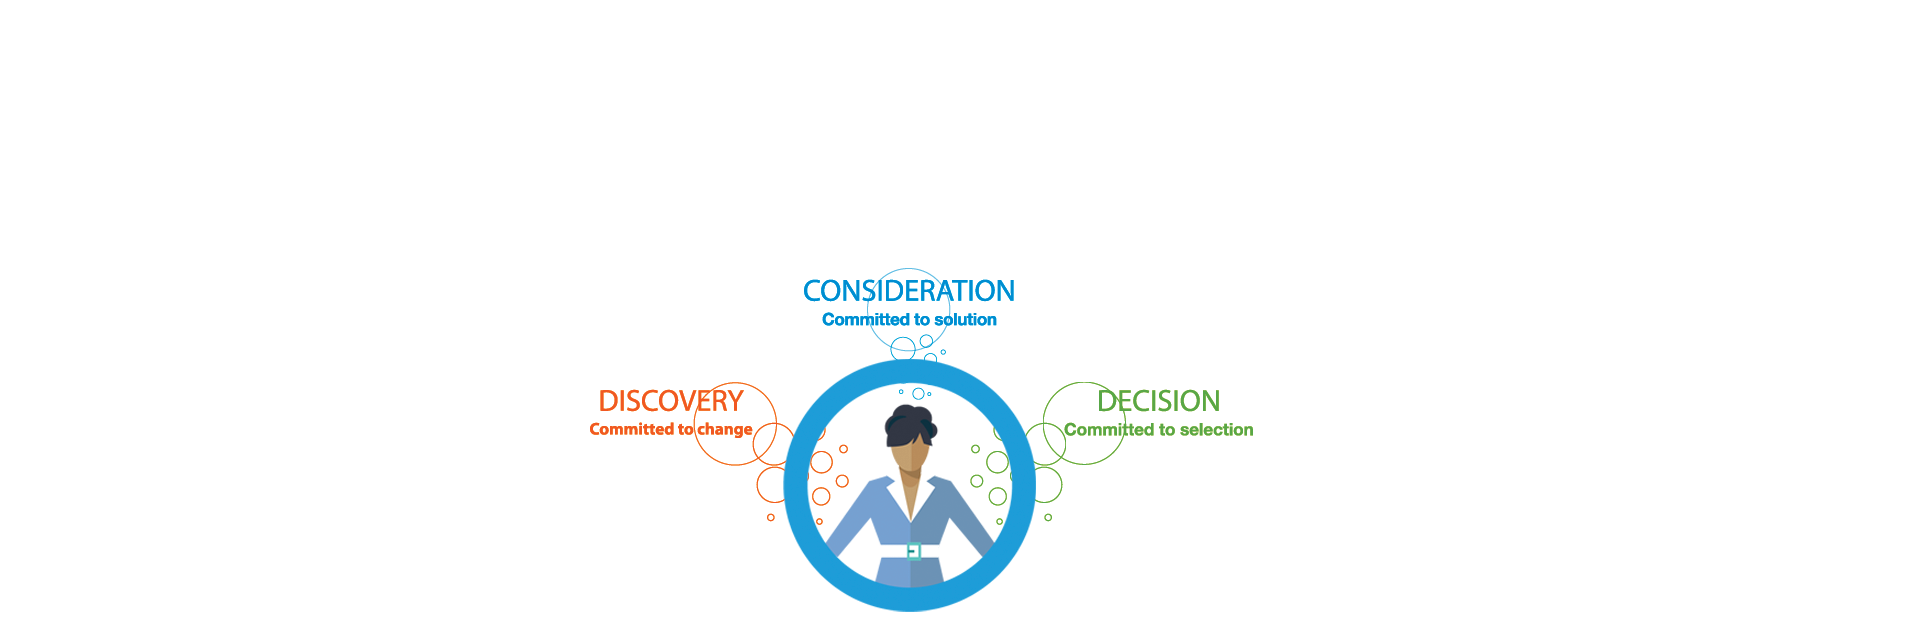 content mapping free ebook download